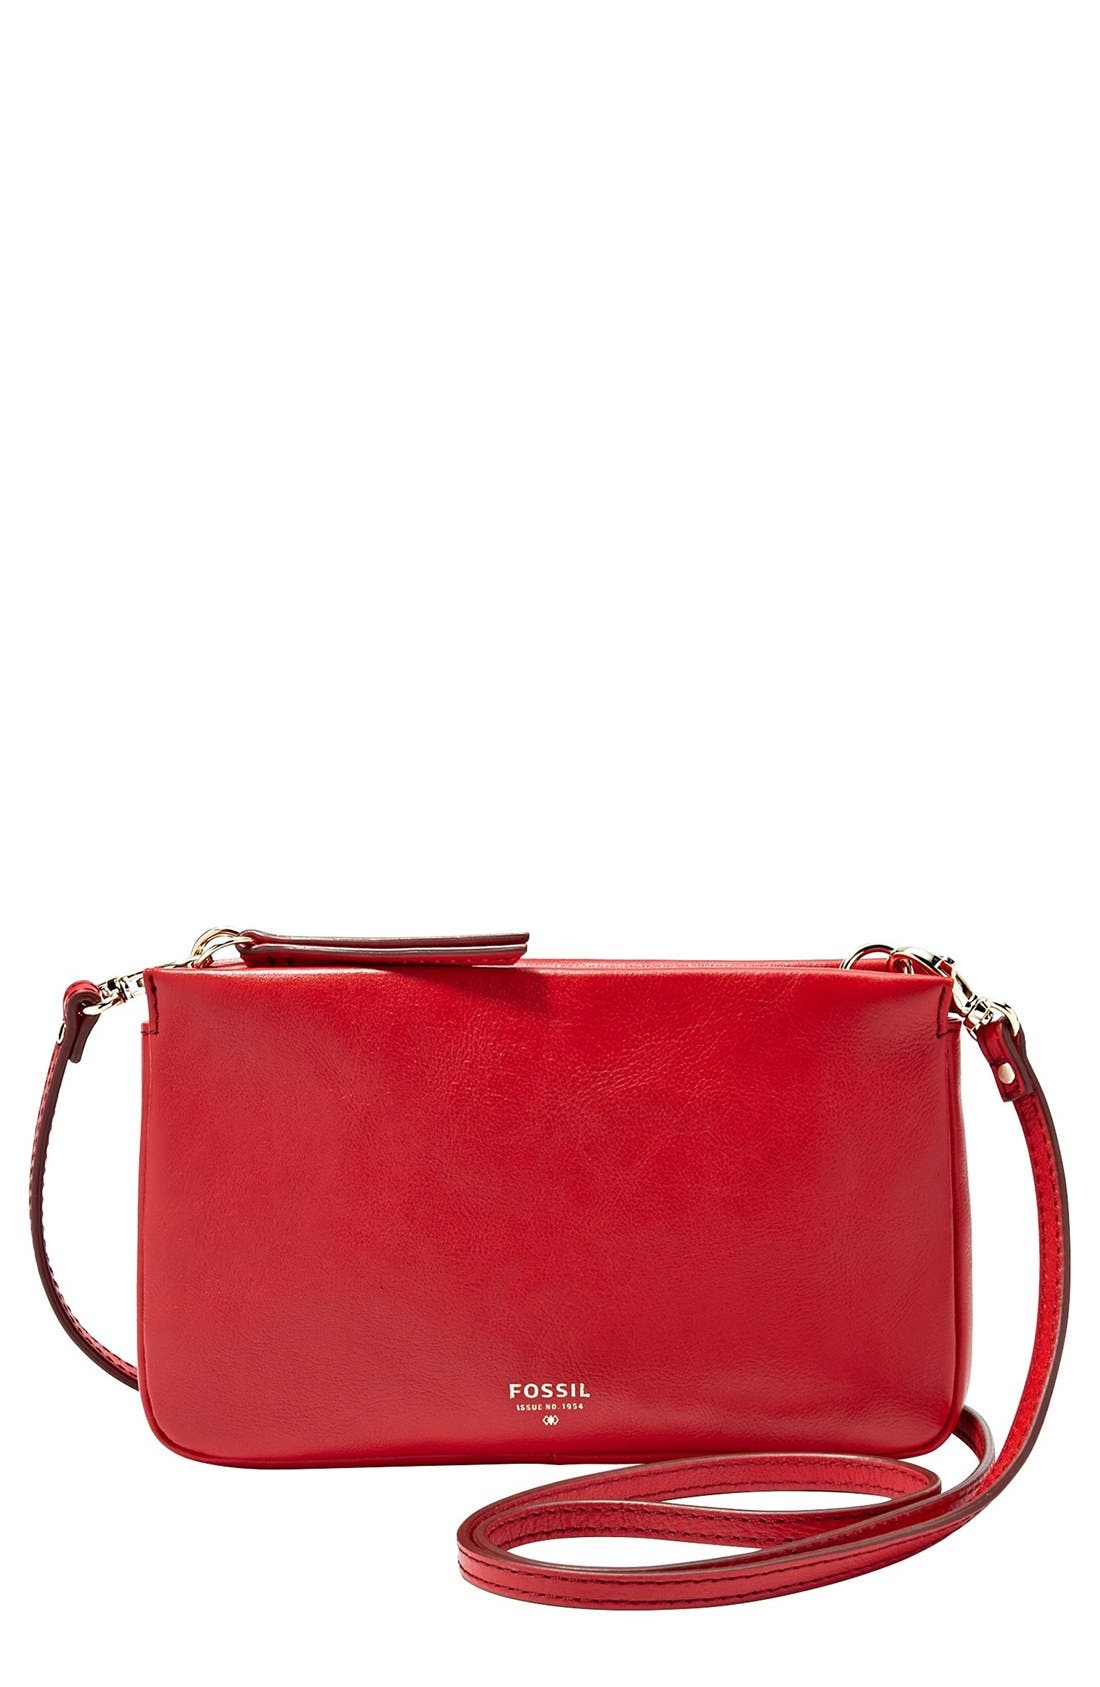 'Mini' Crossbody Bag,                             Main thumbnail 5, color,